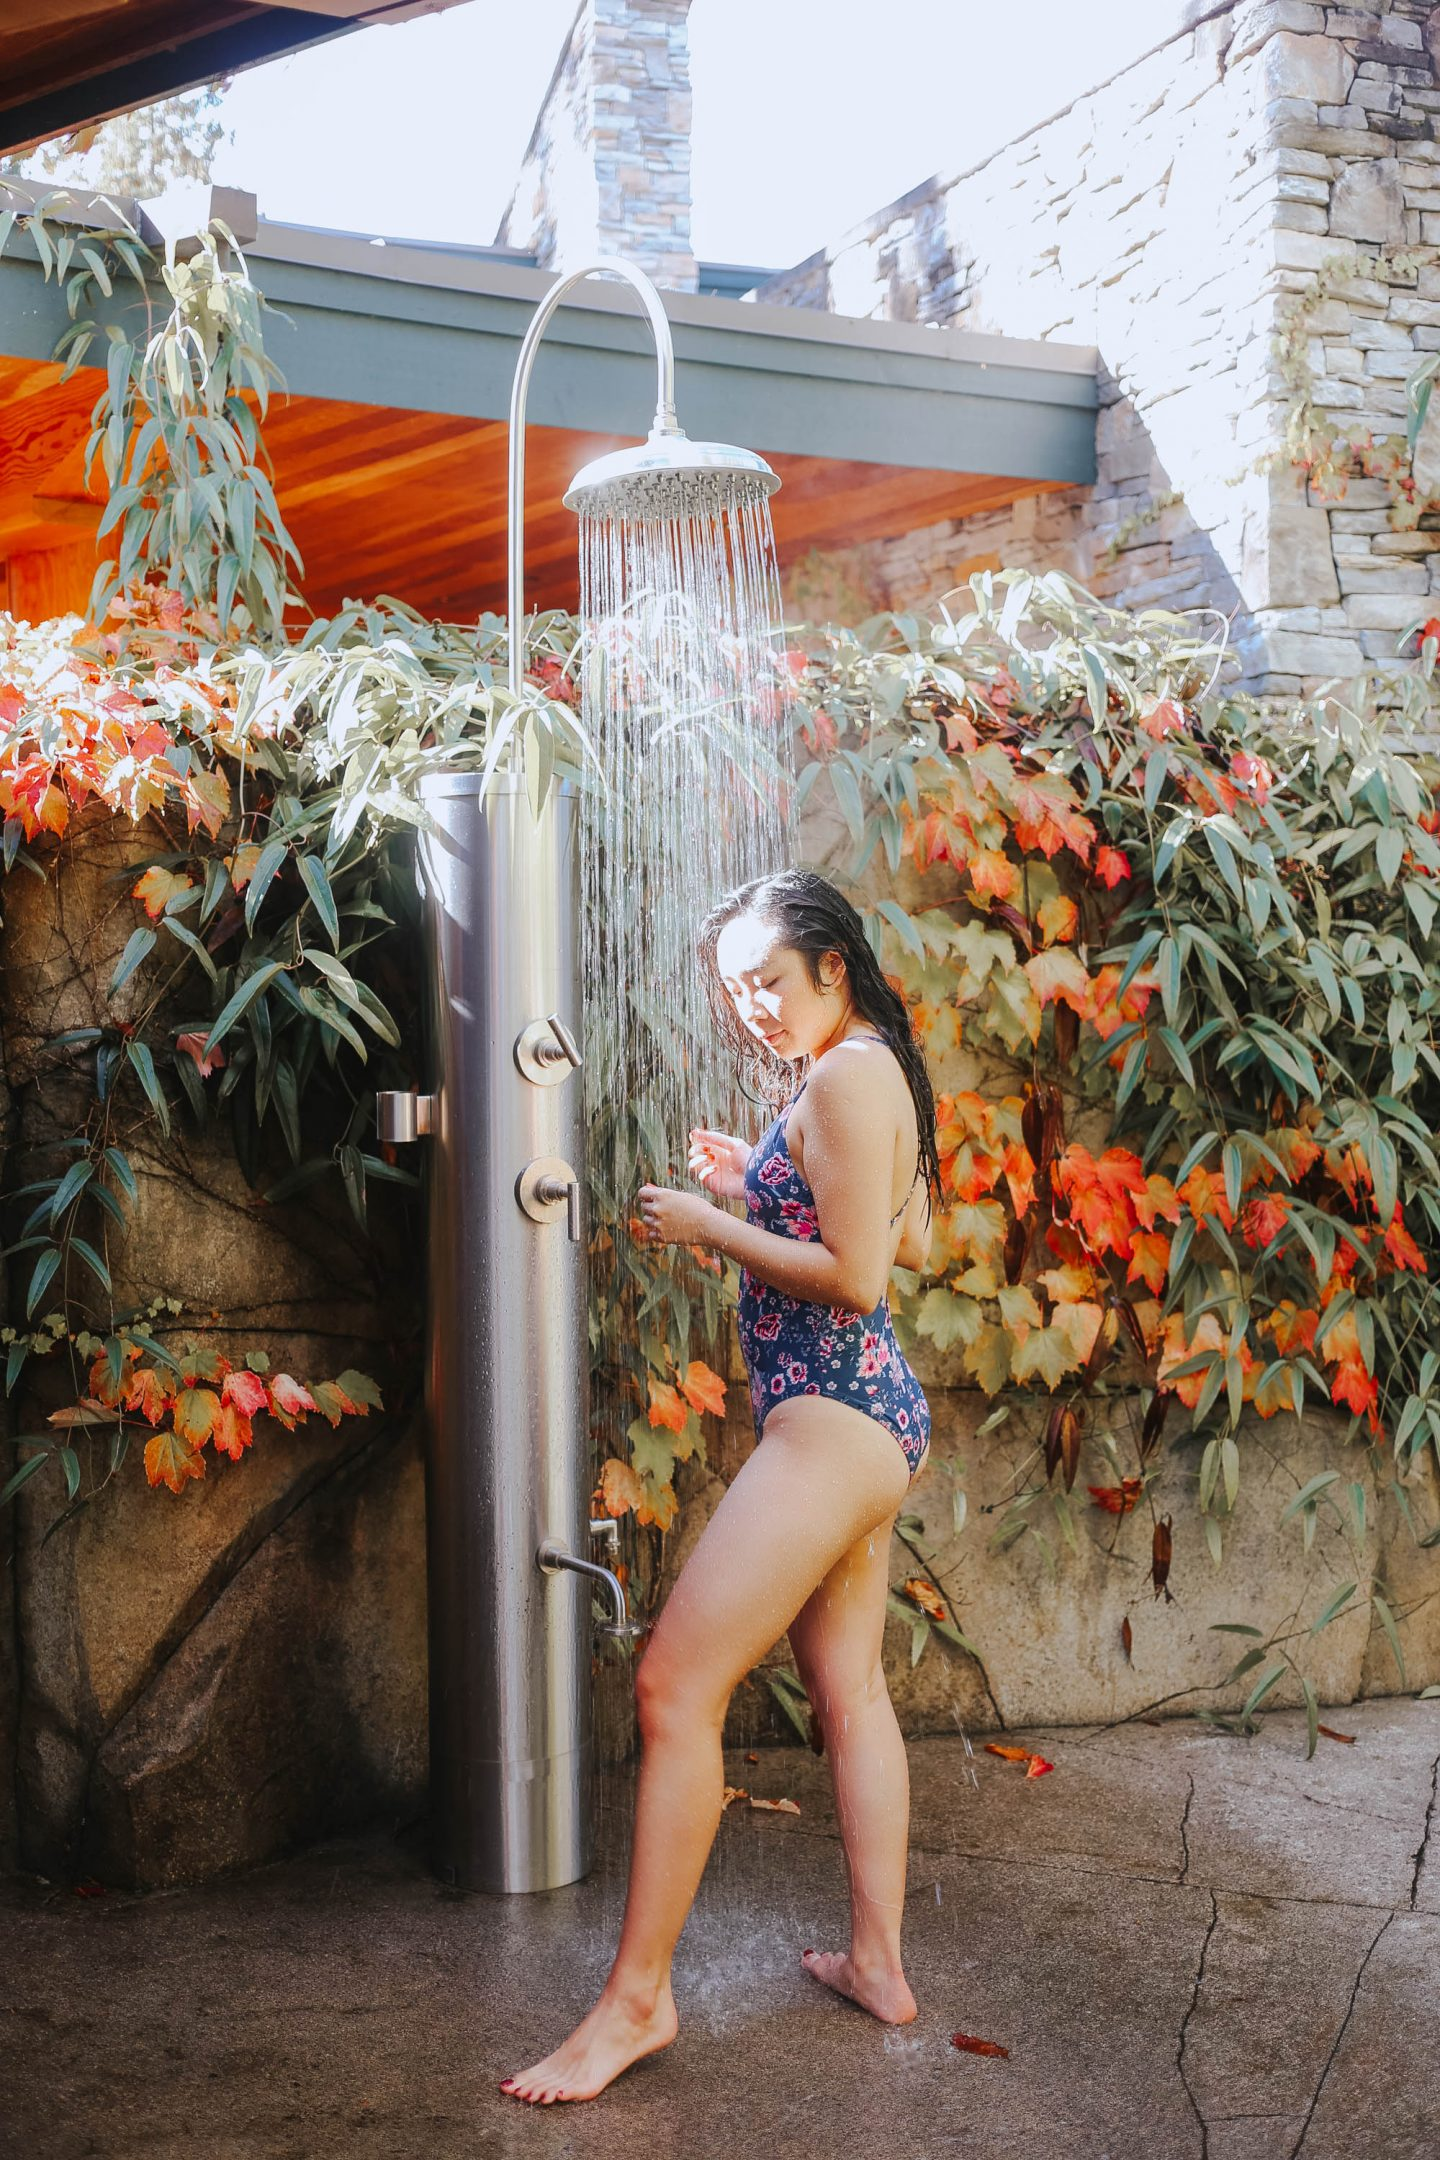 Using the outdoor rain shower at The Spa at the Painted Boat Resort on the Sunshine Coast BC